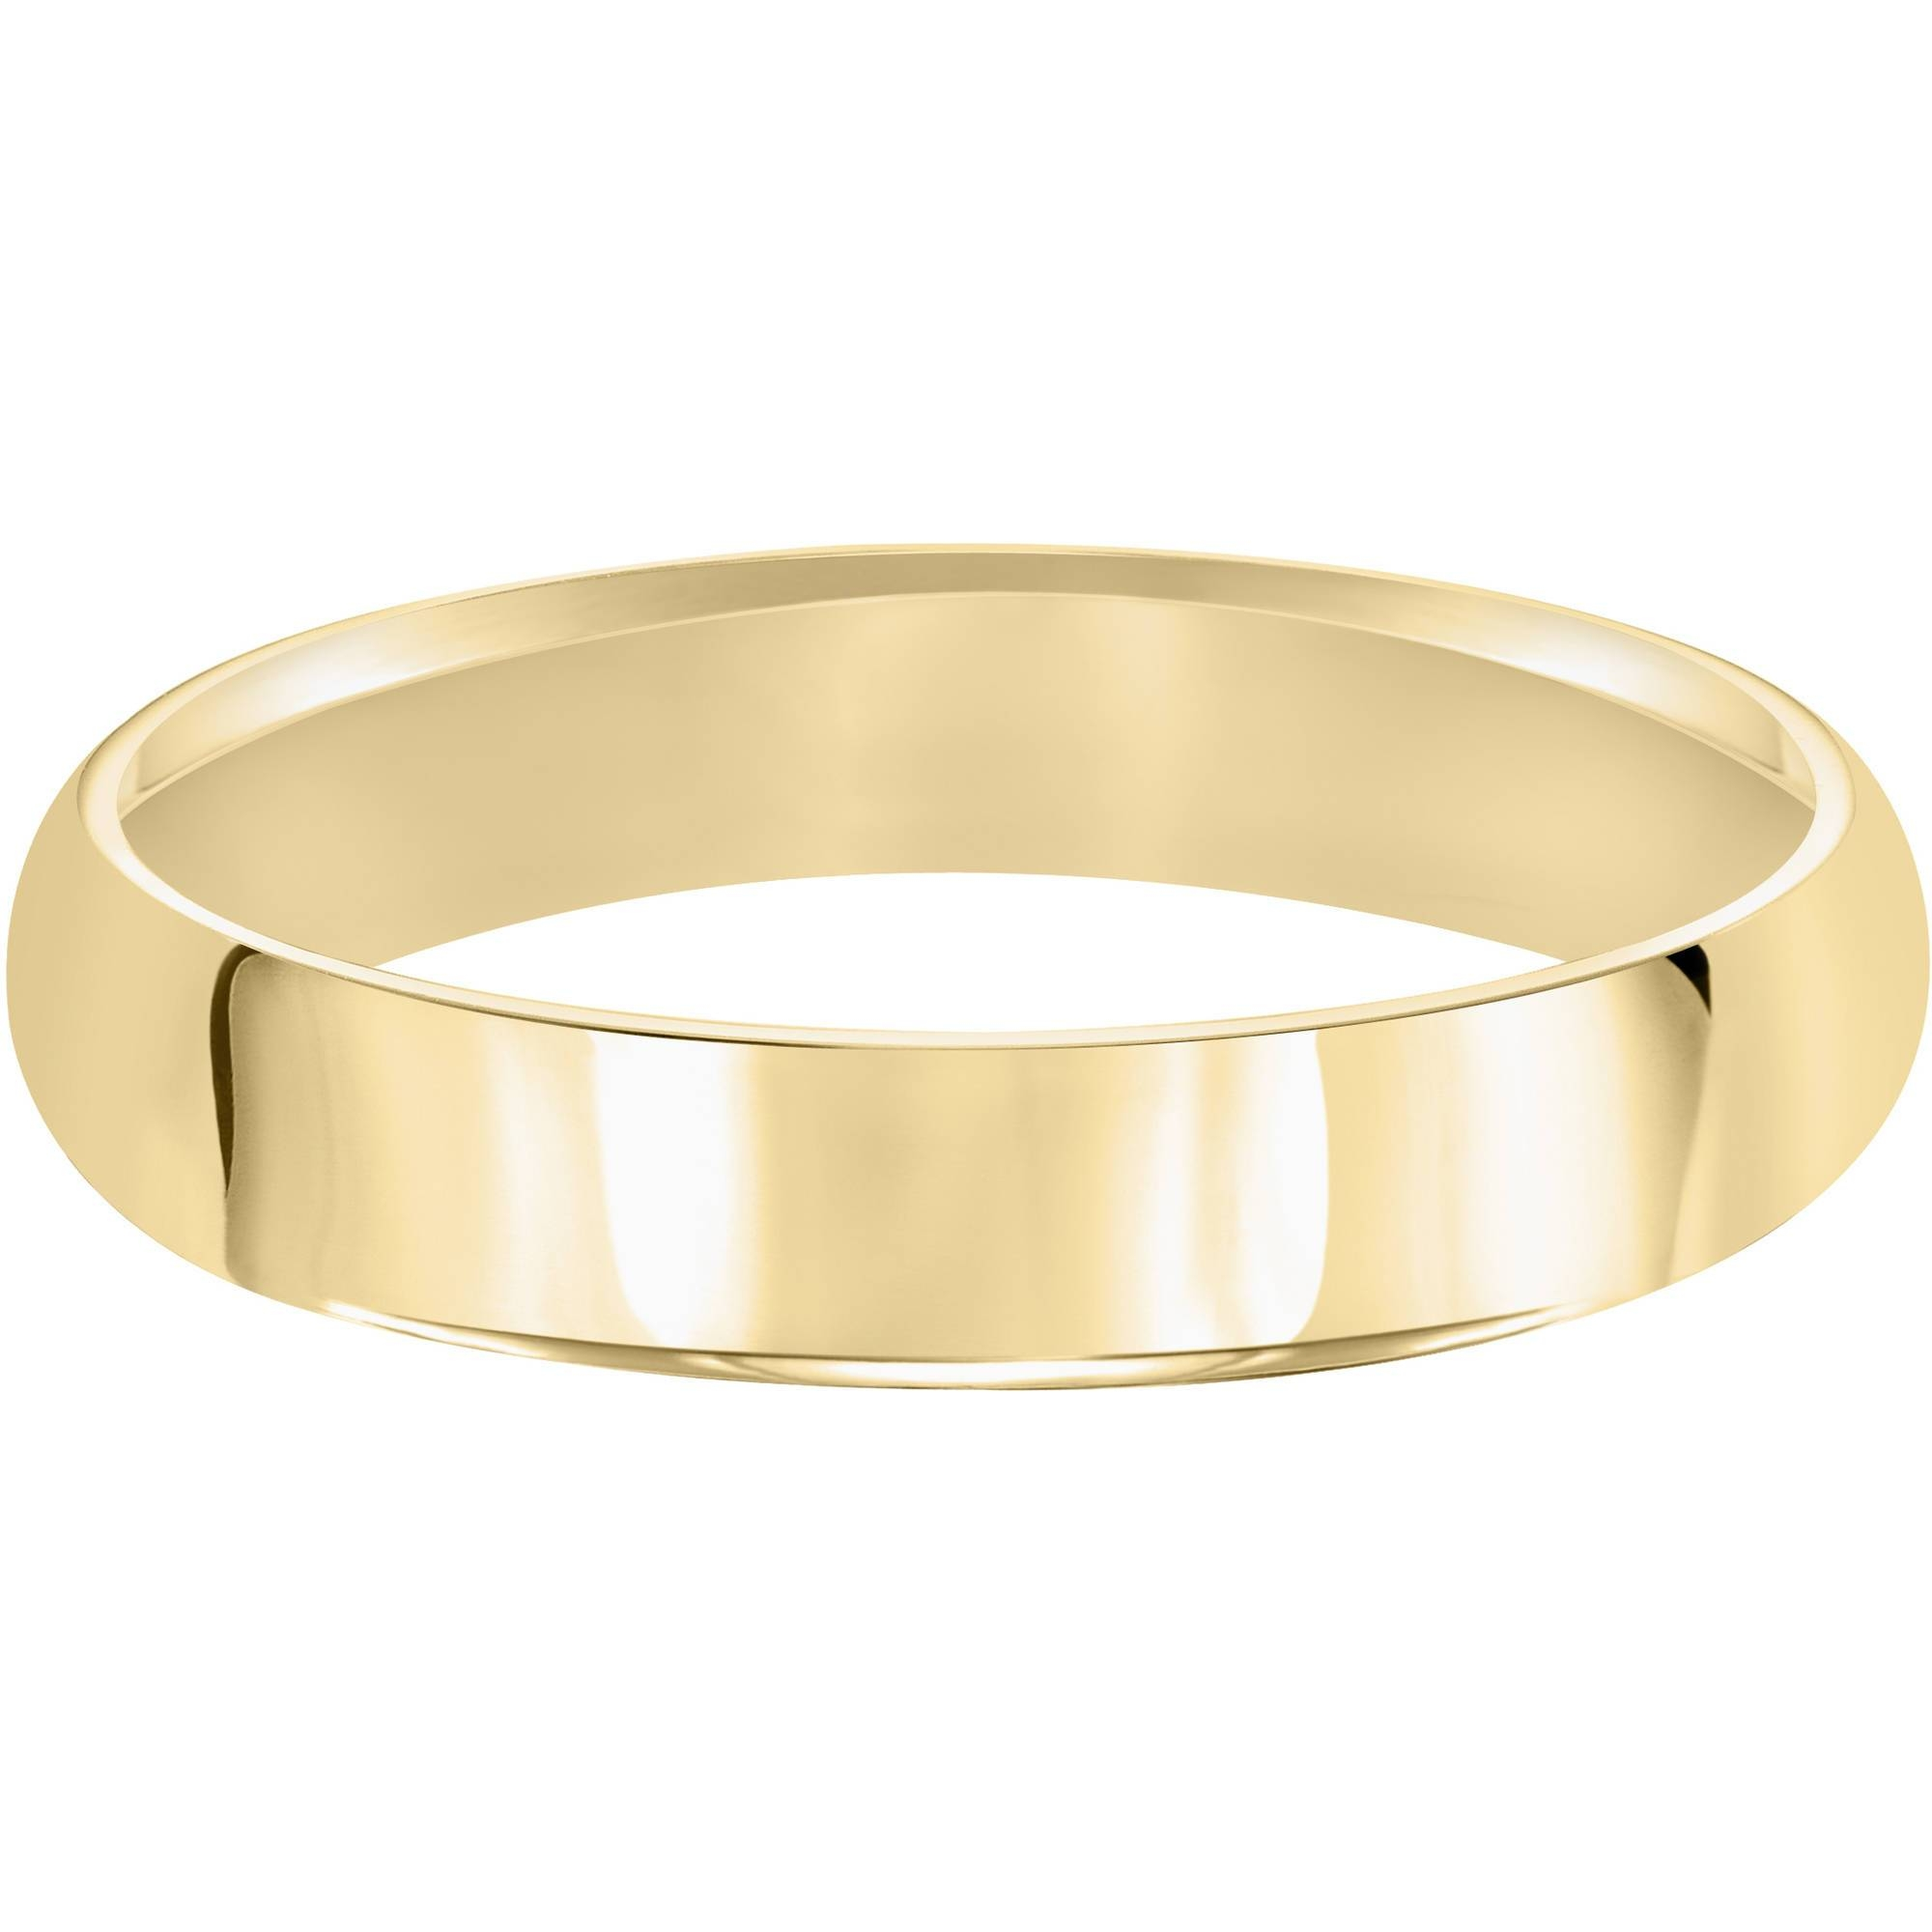 Keepsake 10kt Yellow Gold Wedding Band With High Polish Finish Pertaining To Keepsake Wedding Bands (View 11 of 15)